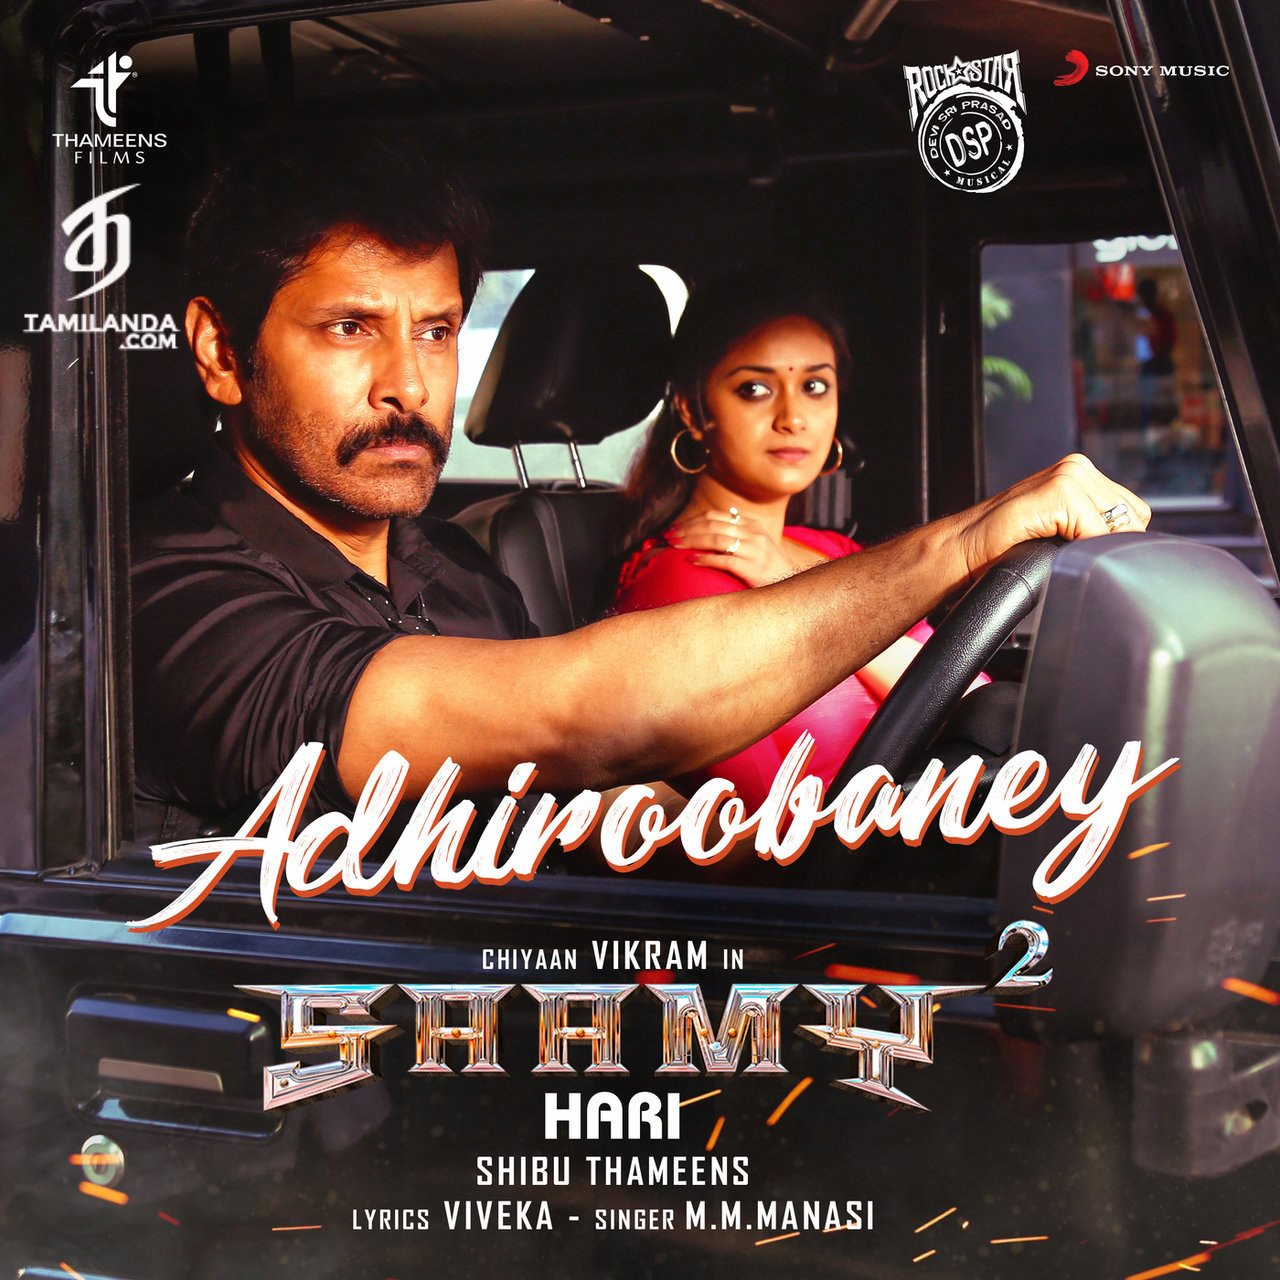 Adhiroobaney (From Saamy Square) 24 BIT 48 KHZ Single FLAC Song